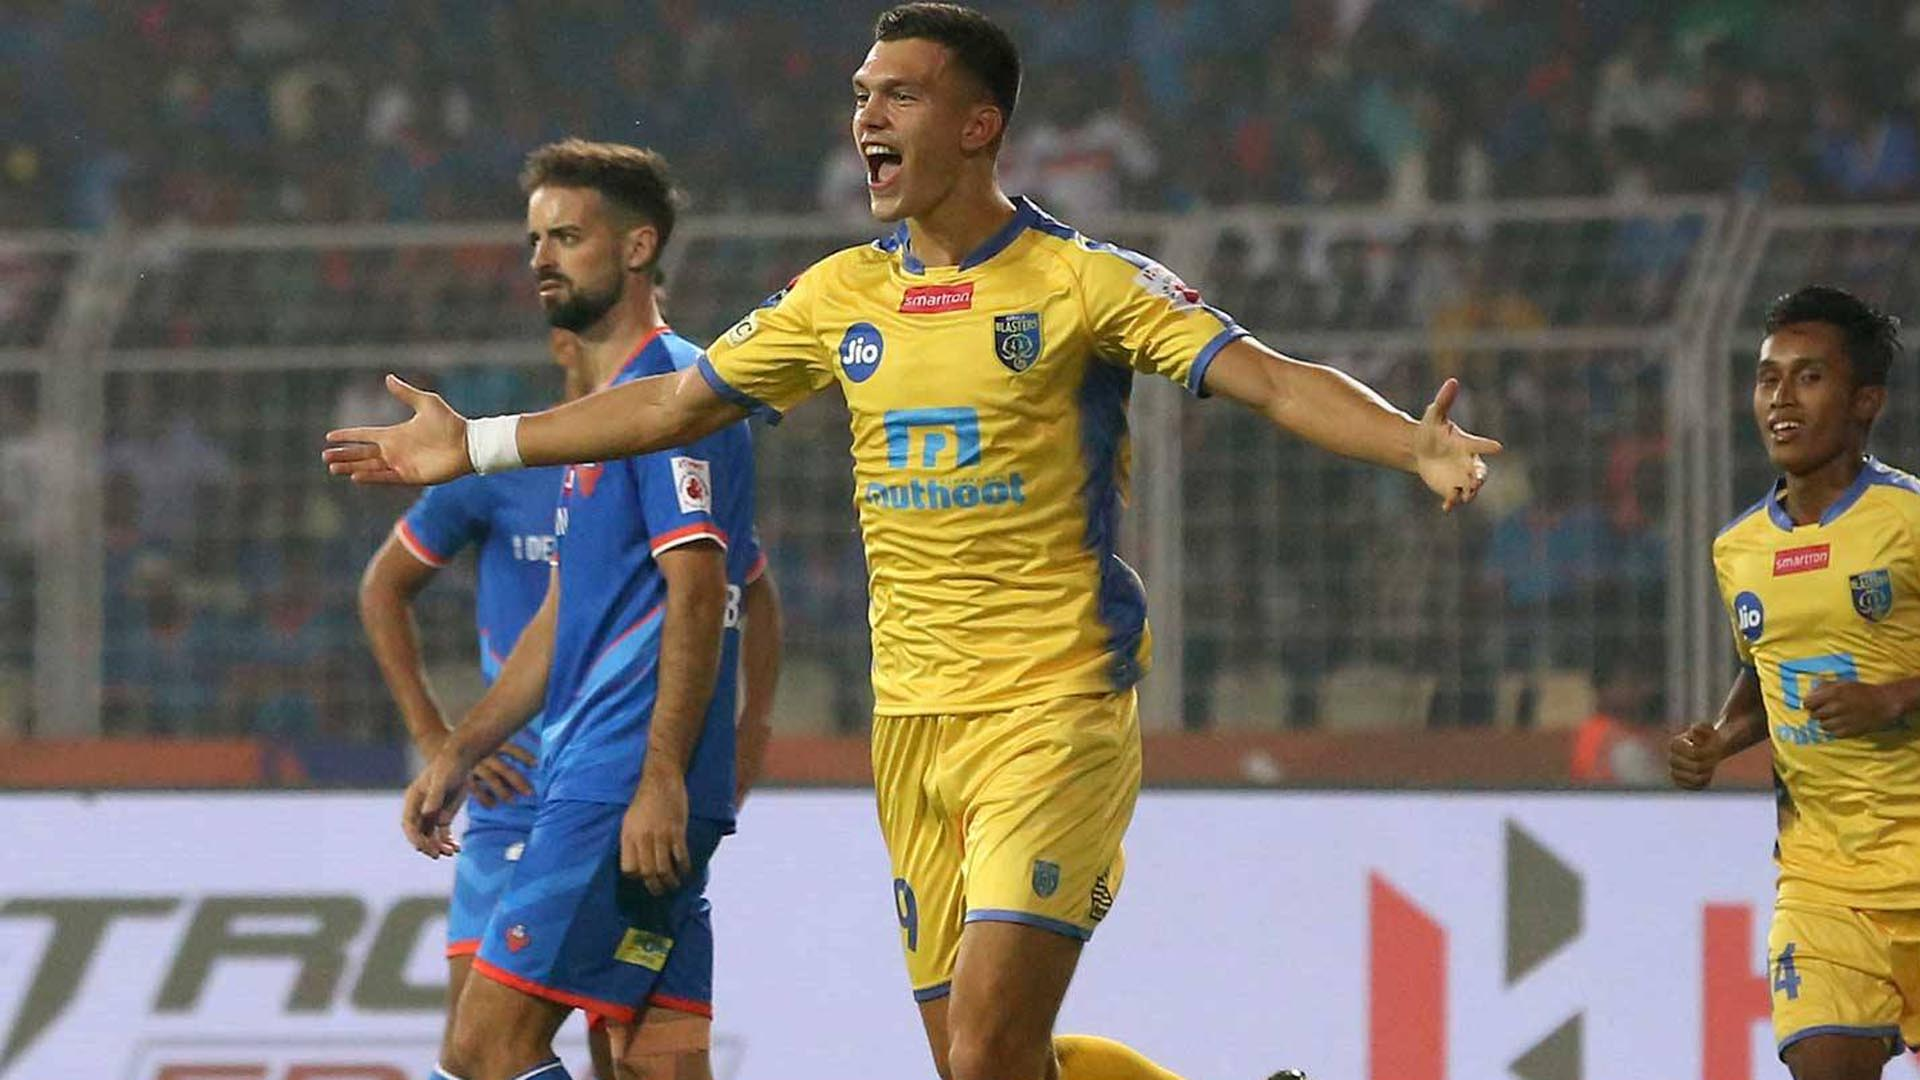 Mark Sifneos says good bye to Kerala Blasters